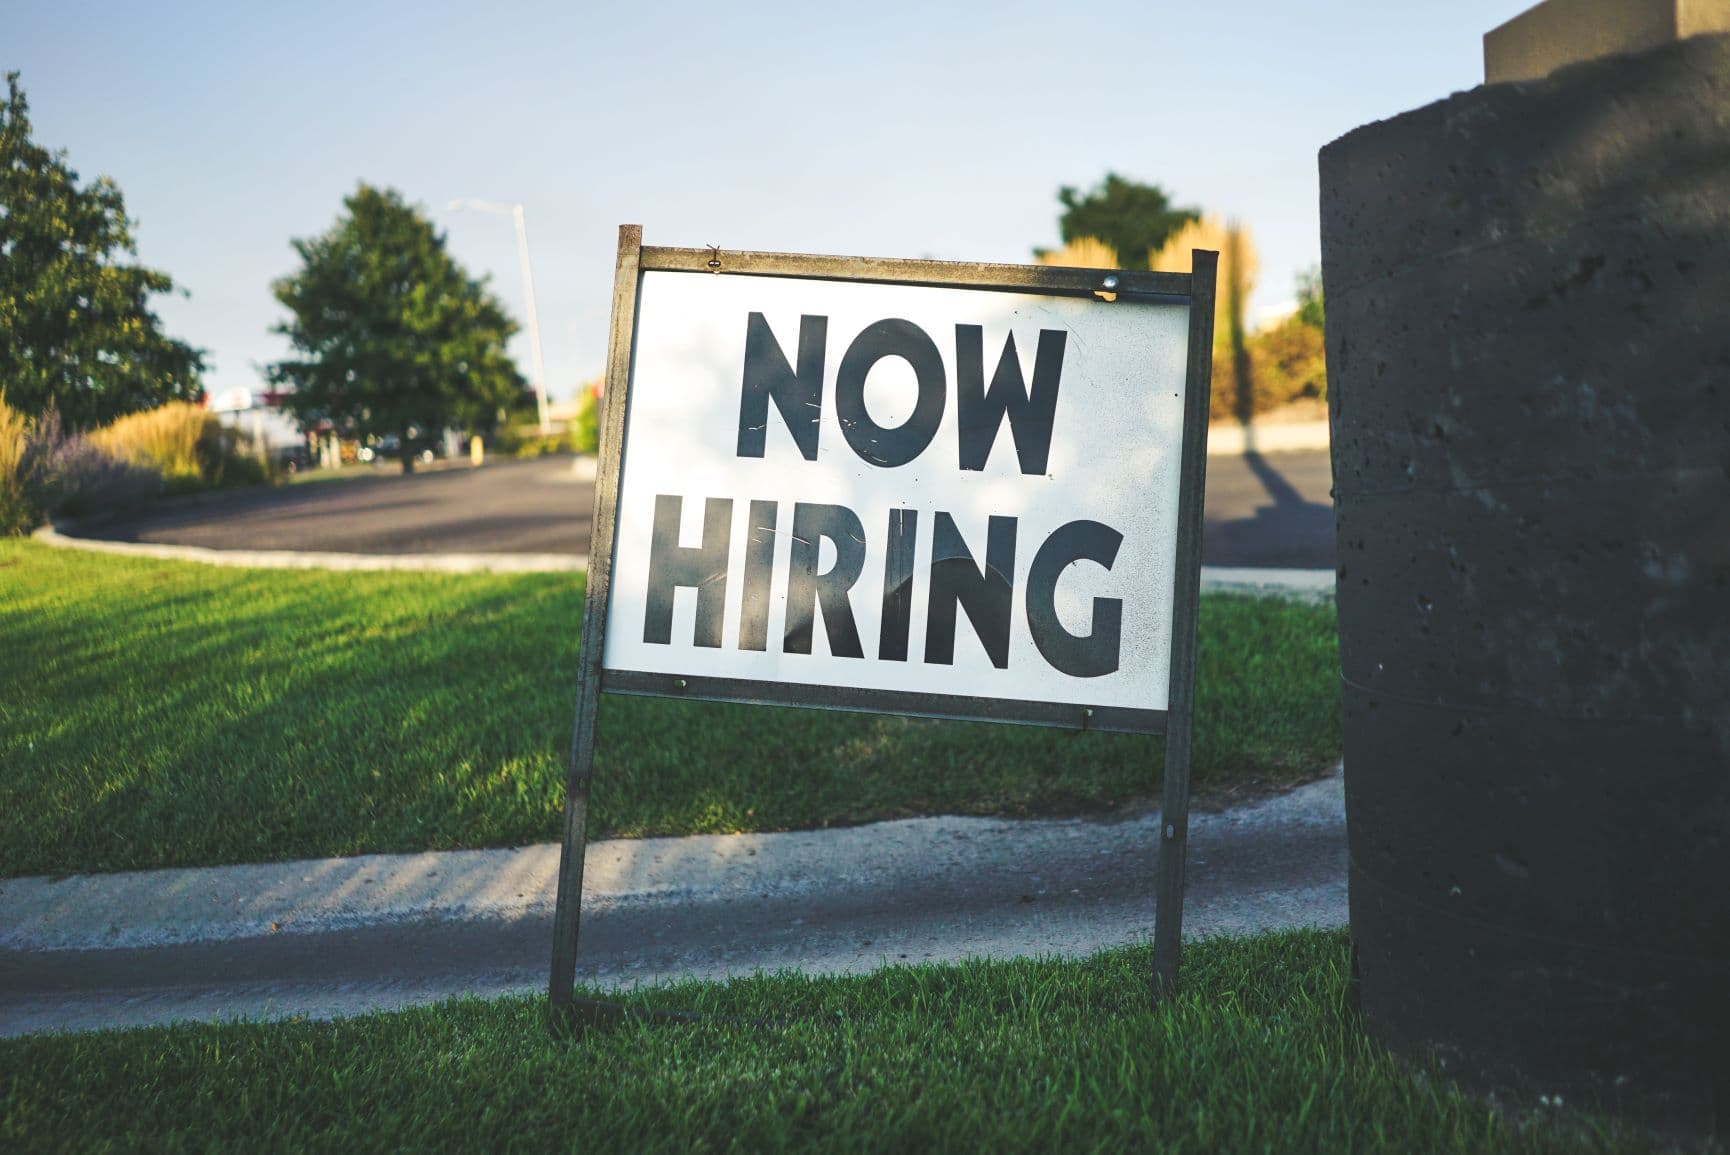 Best practices for offering a job